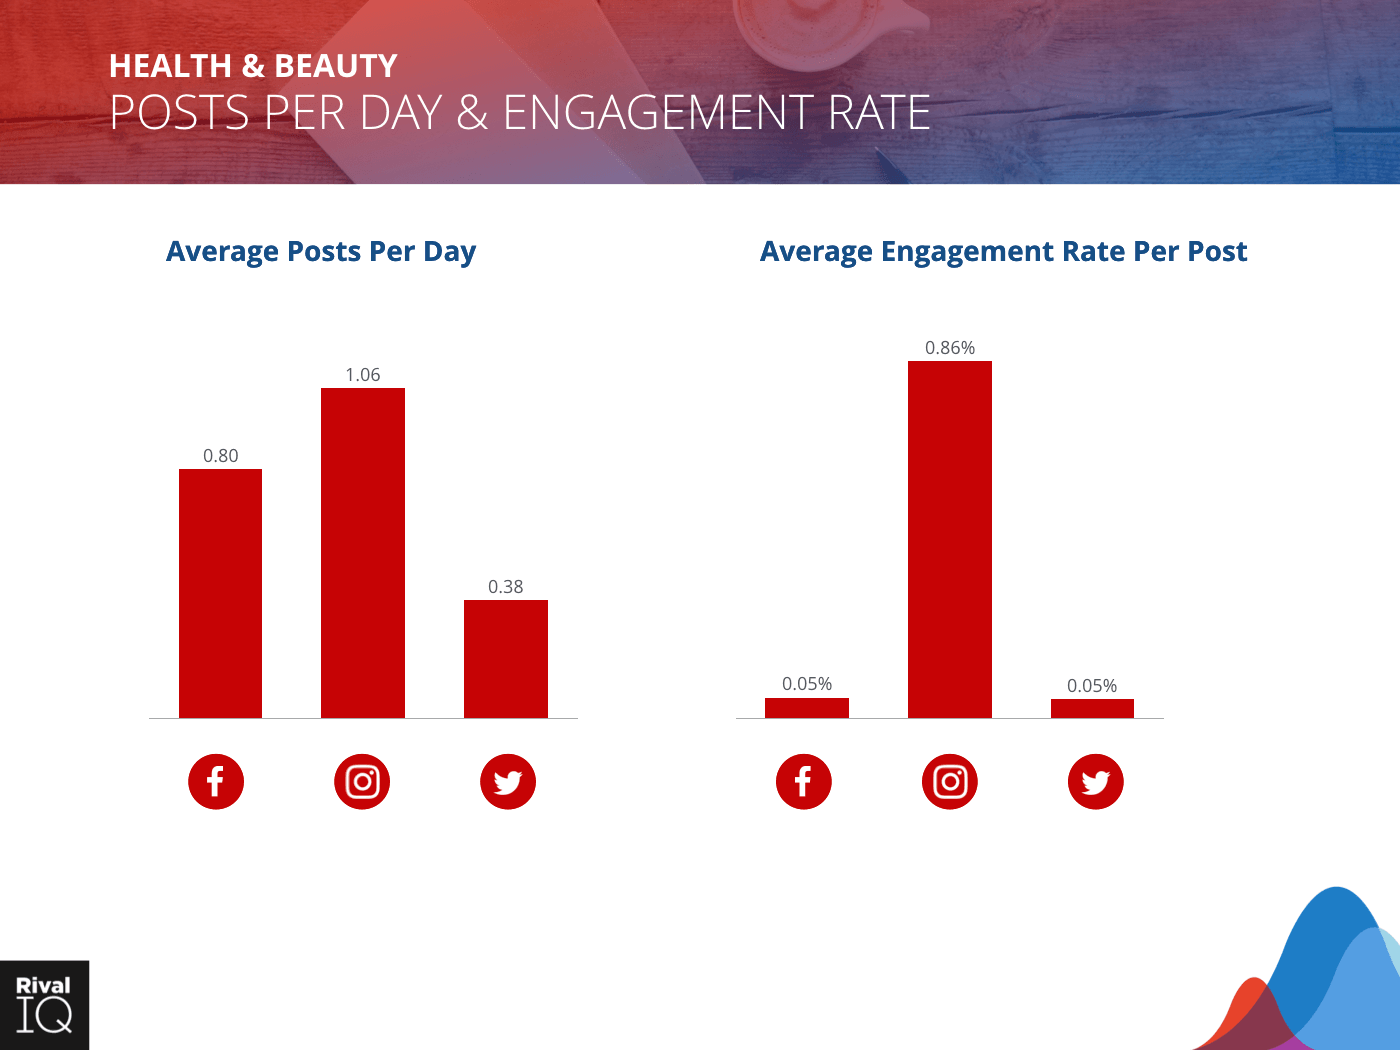 Health & Beauty Industry: Bar graph, average post per day and engagement rate, all channels.